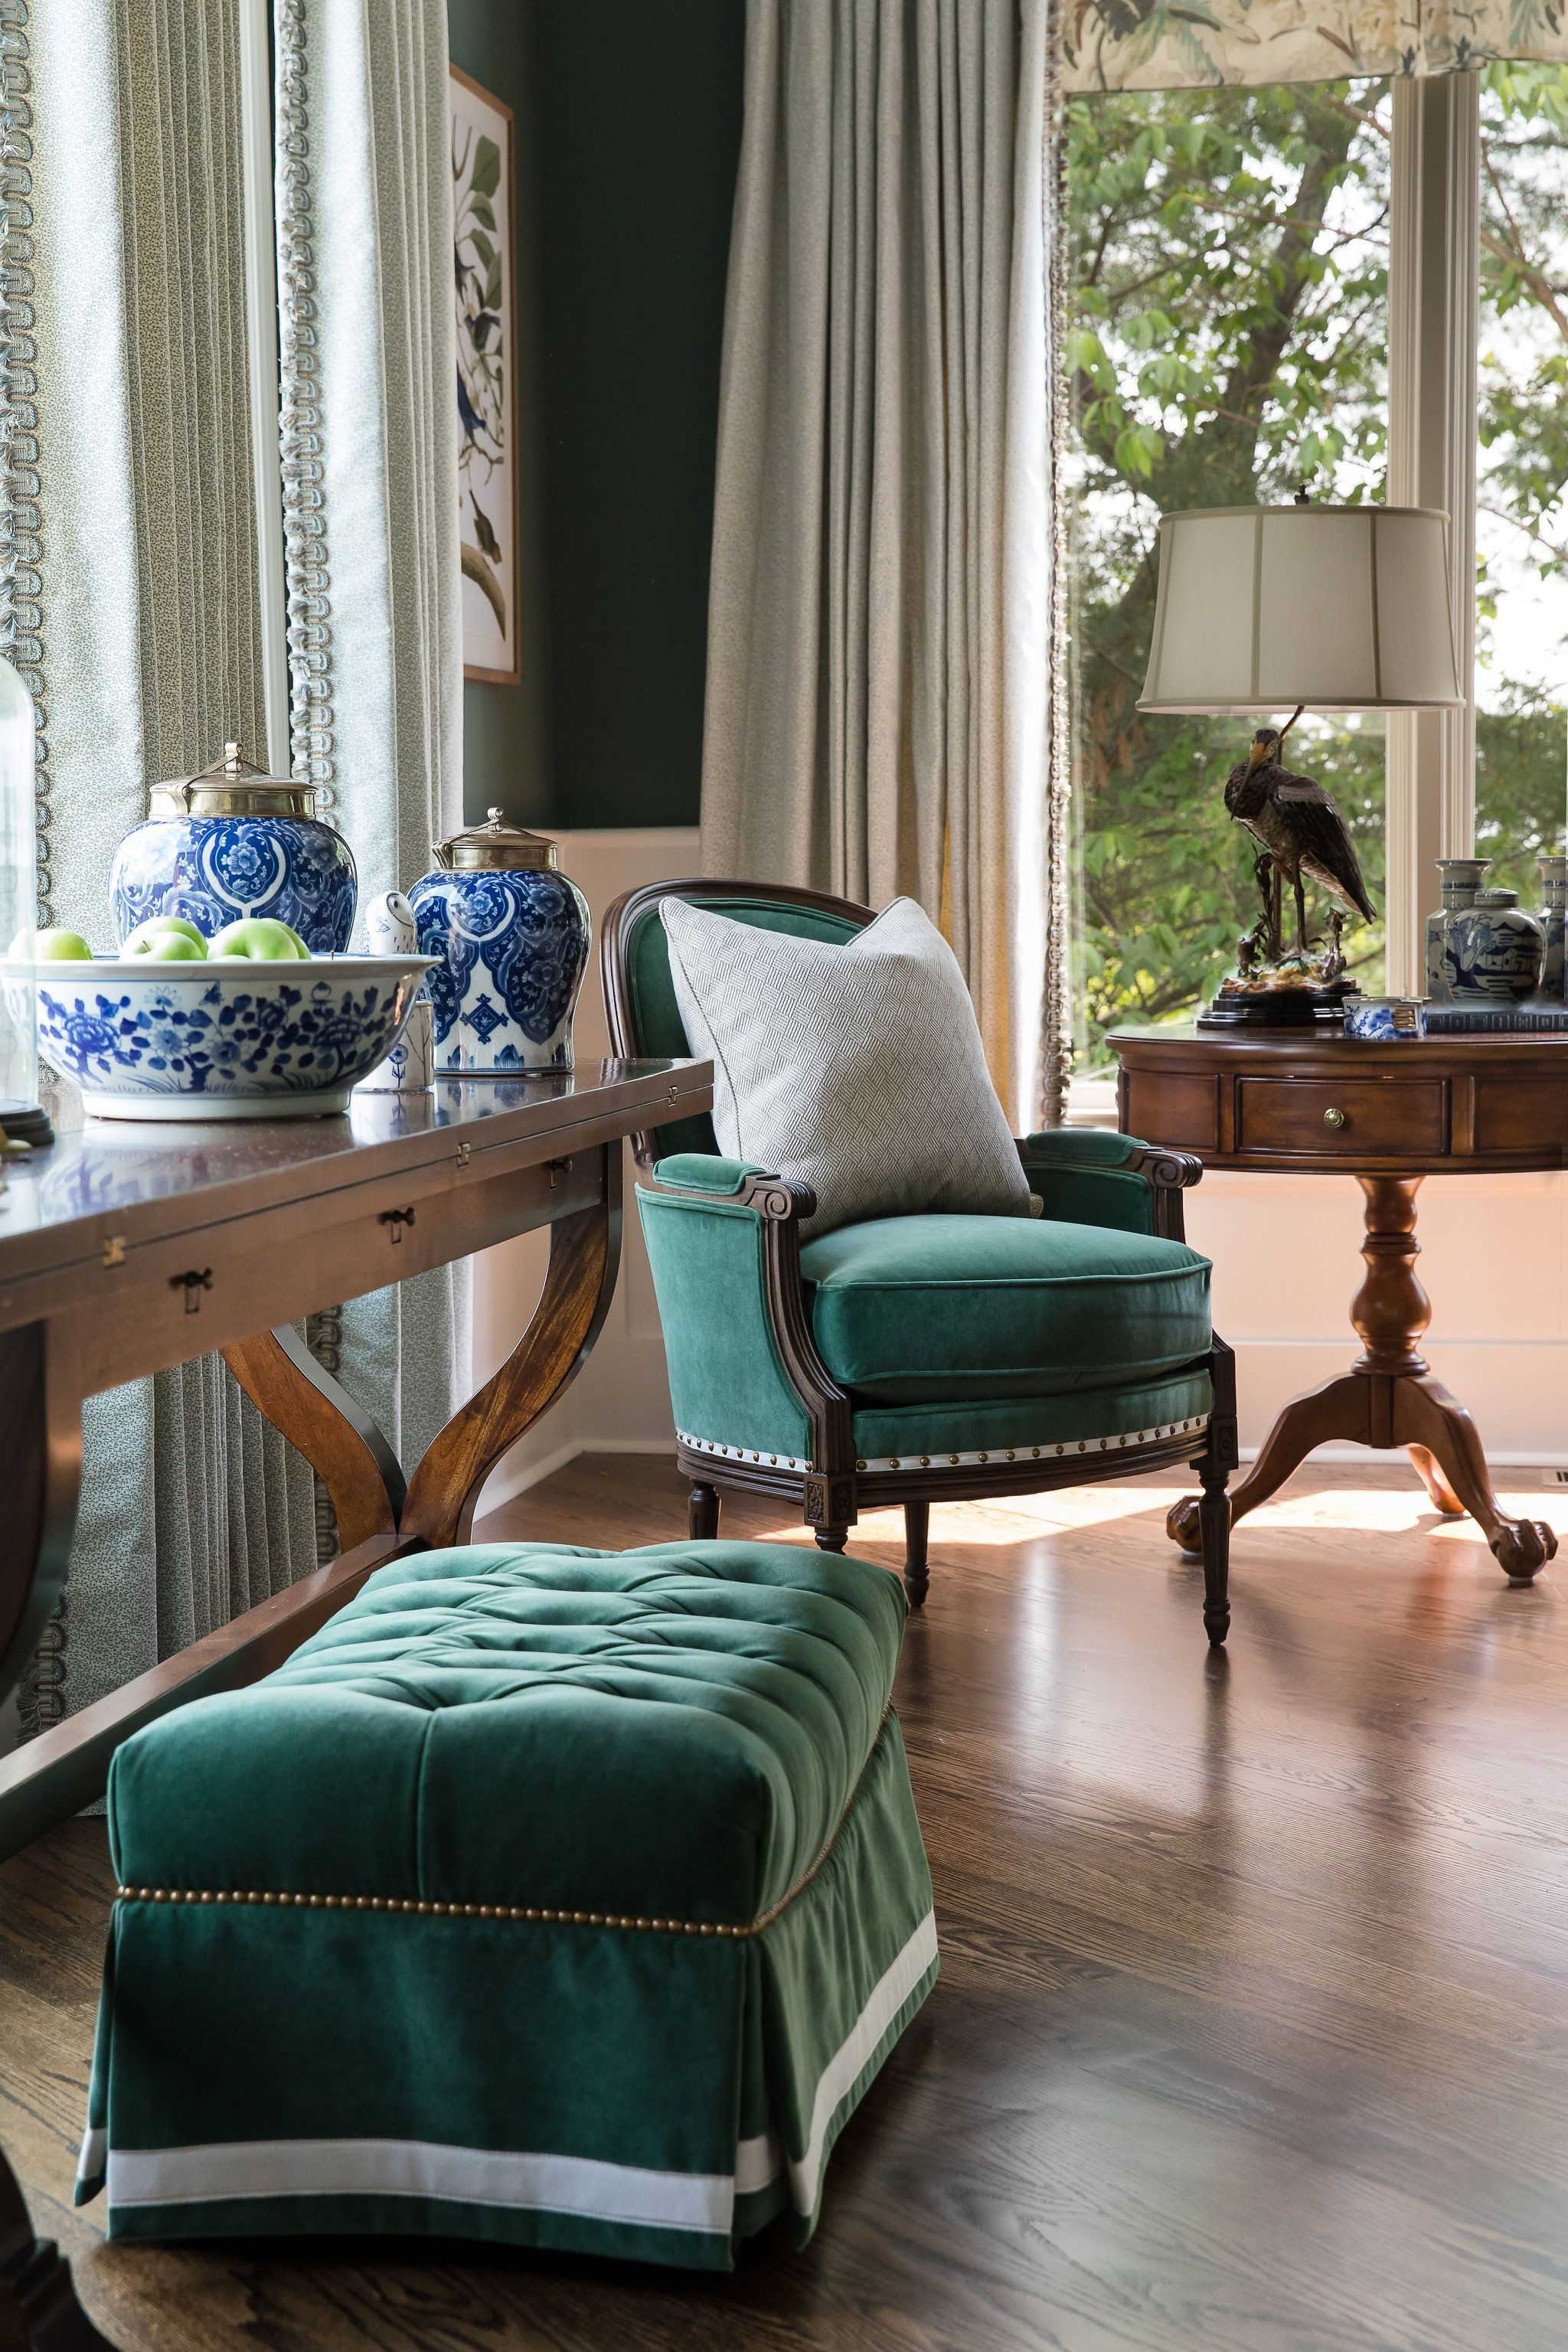 Enduringsouthernhomes Interiordesign Homedecor Southernstyle